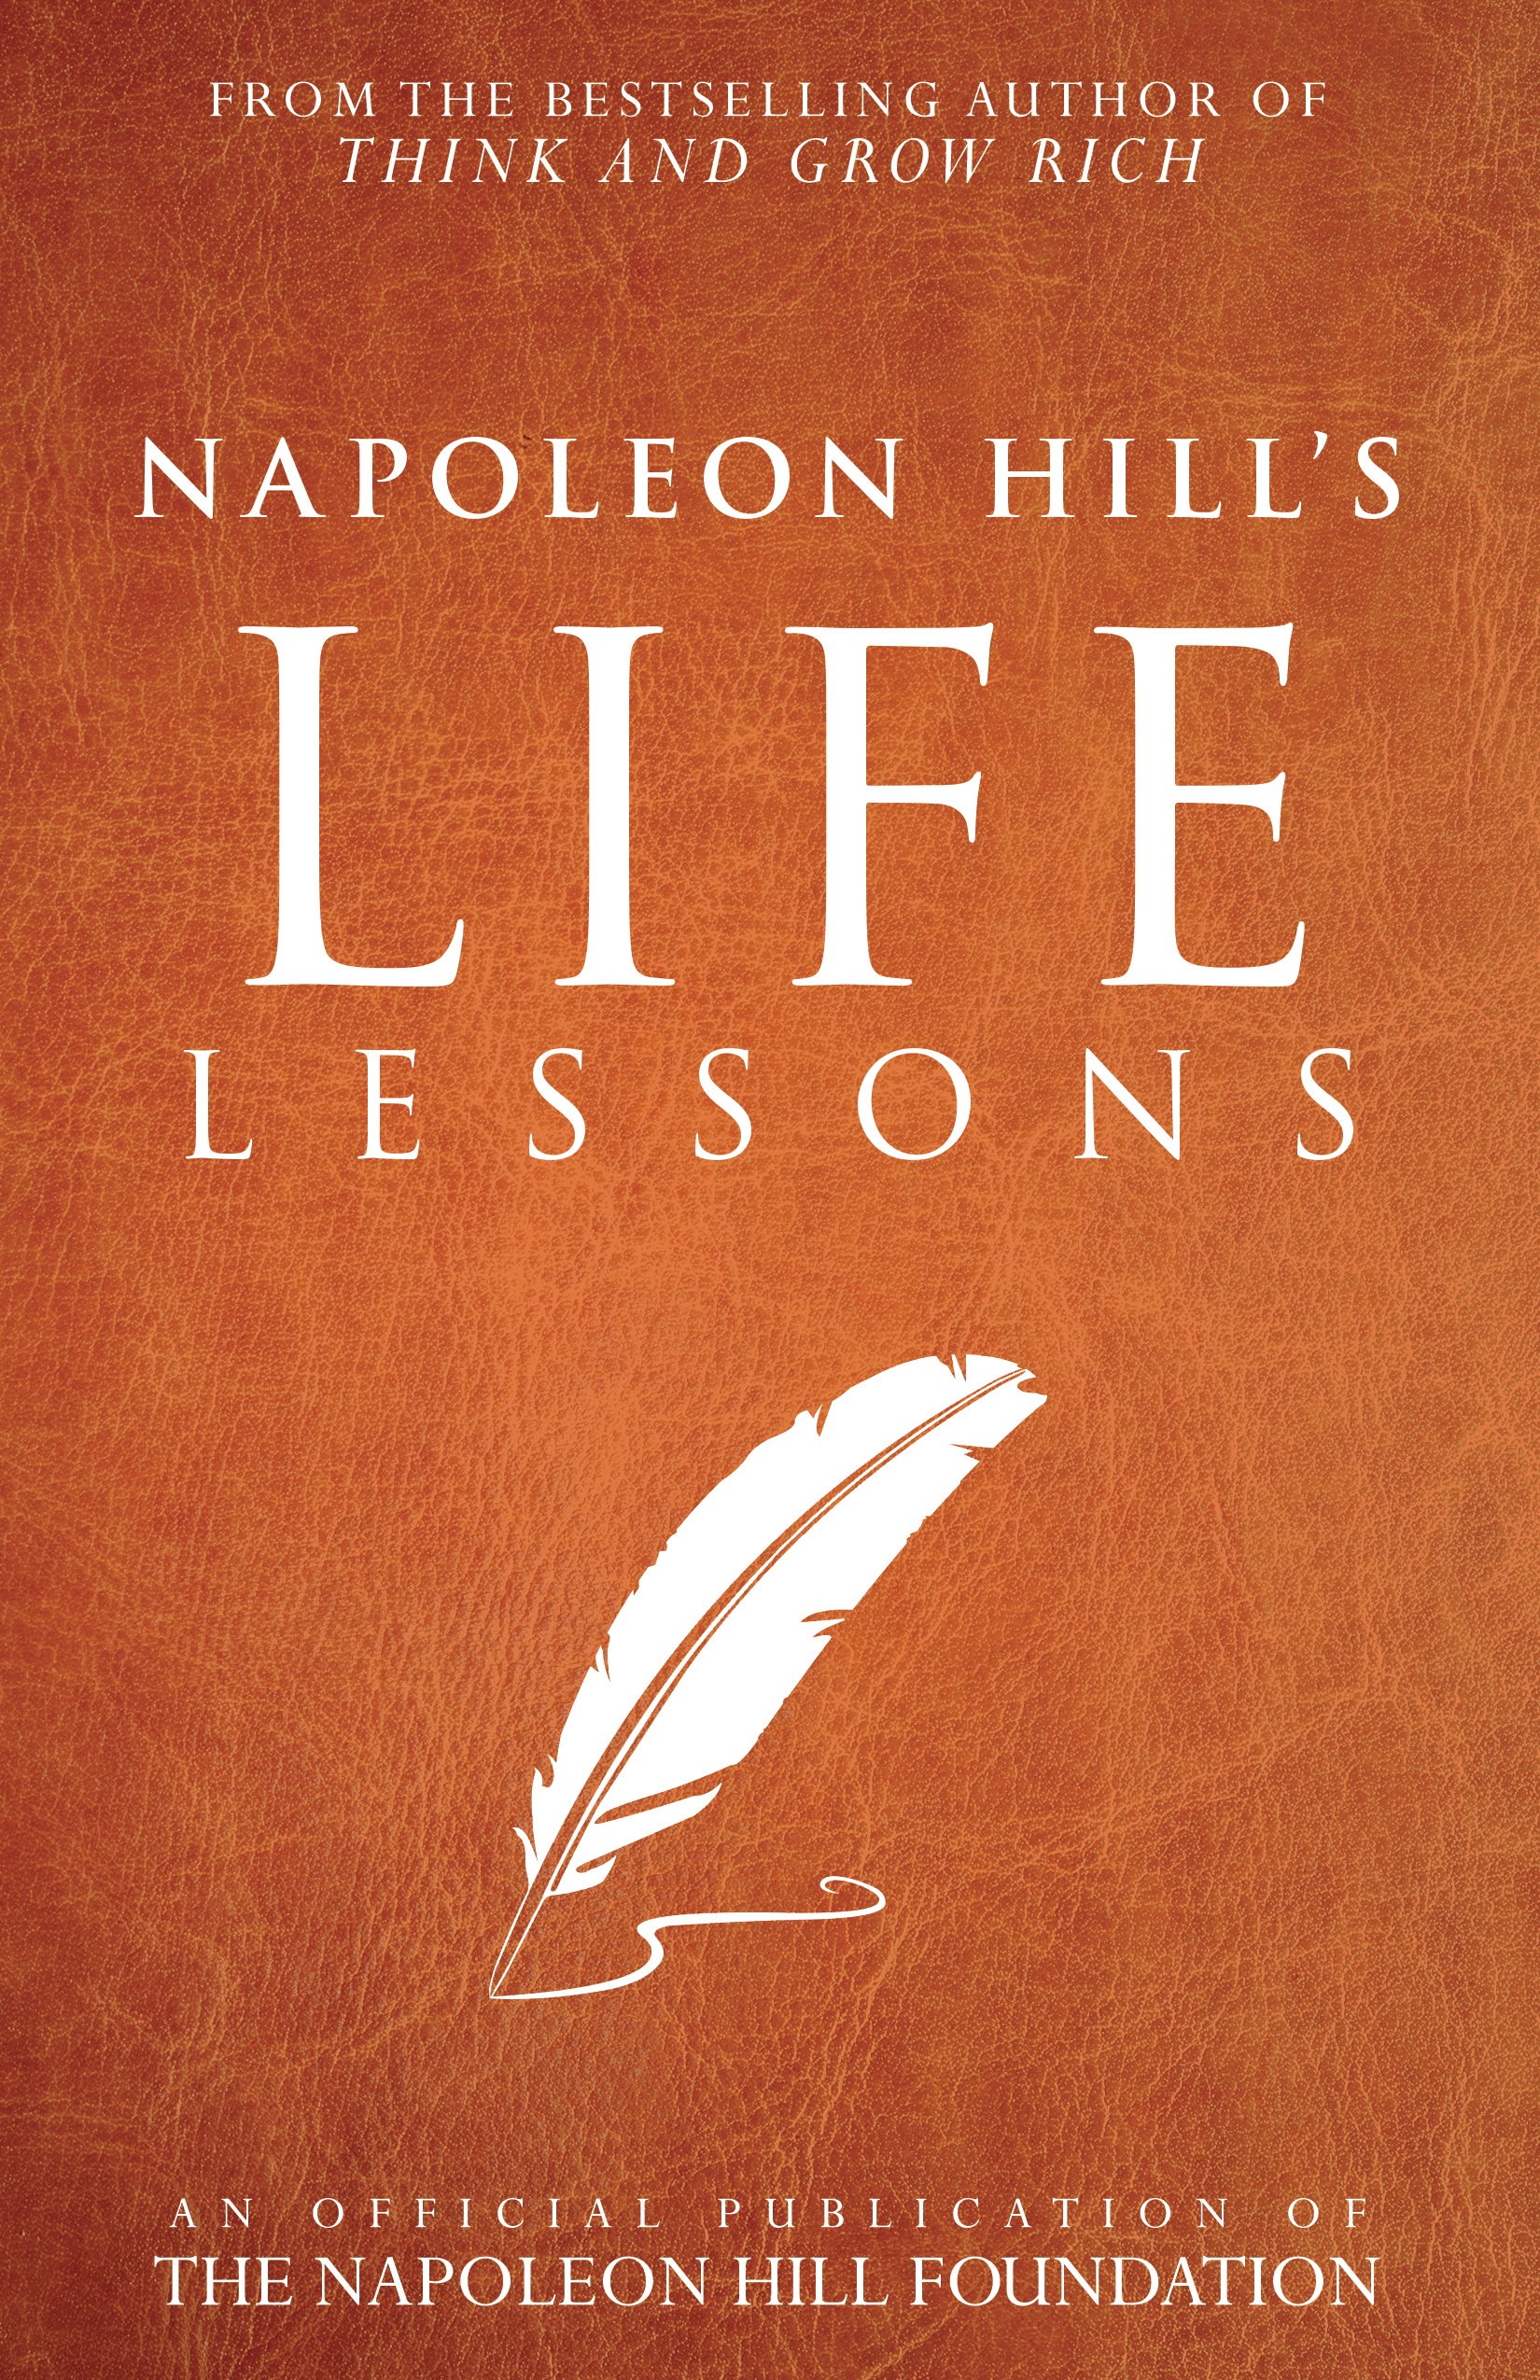 Napoleon Hill's Life Lessons - By napoleon hill